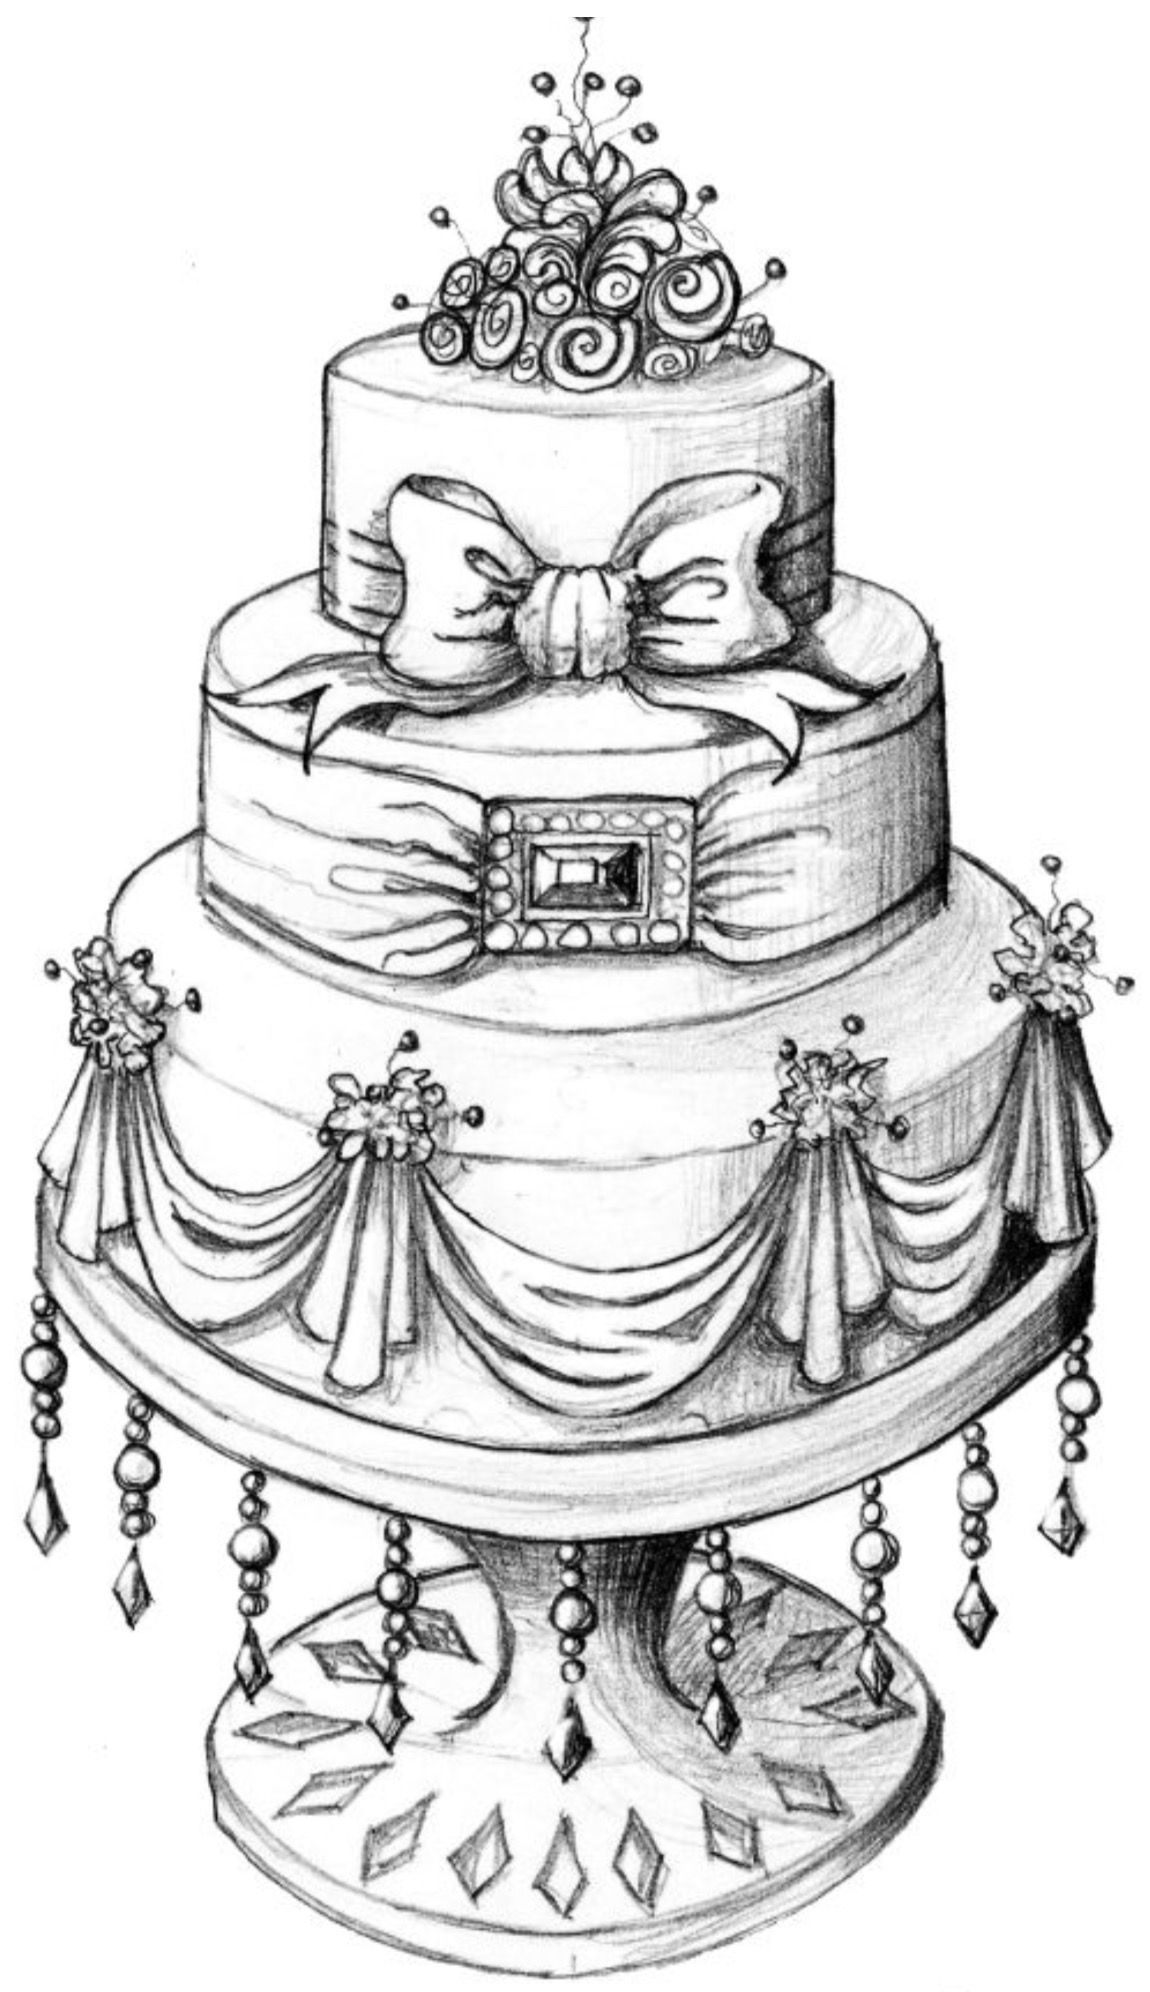 Pin By Marjolein Pompen On Cooking Cake Sketch Cake Drawing Cake Illustration